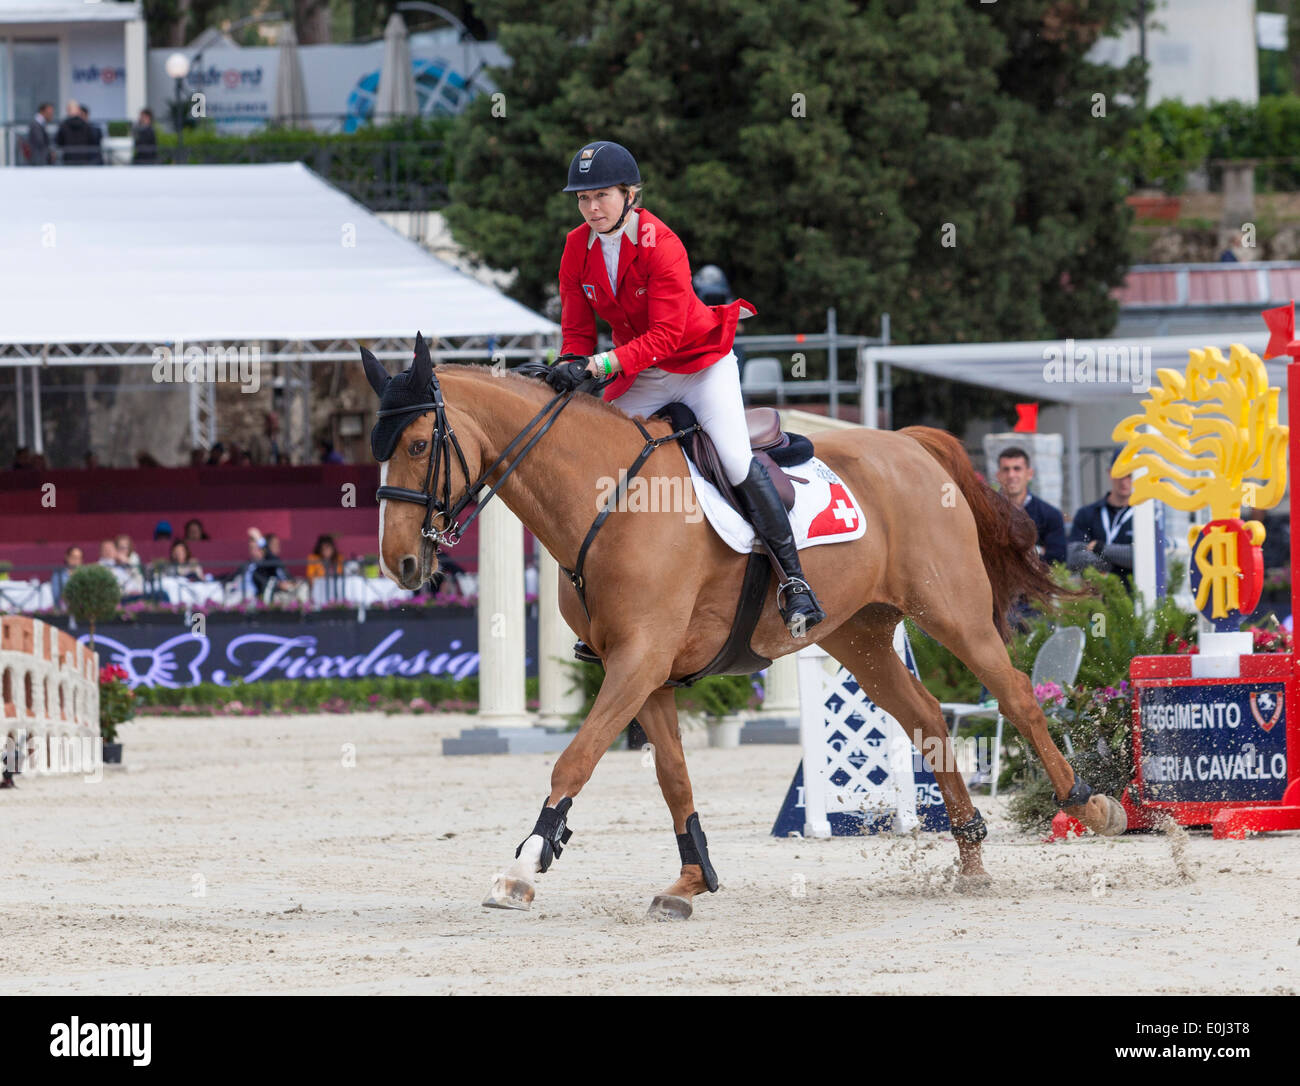 Christina Liebherr on LB Callas Sitte competing in the Furusiyya Nations Cup in Piazza di Siena show jumping event in Rome 2013. - Stock Image